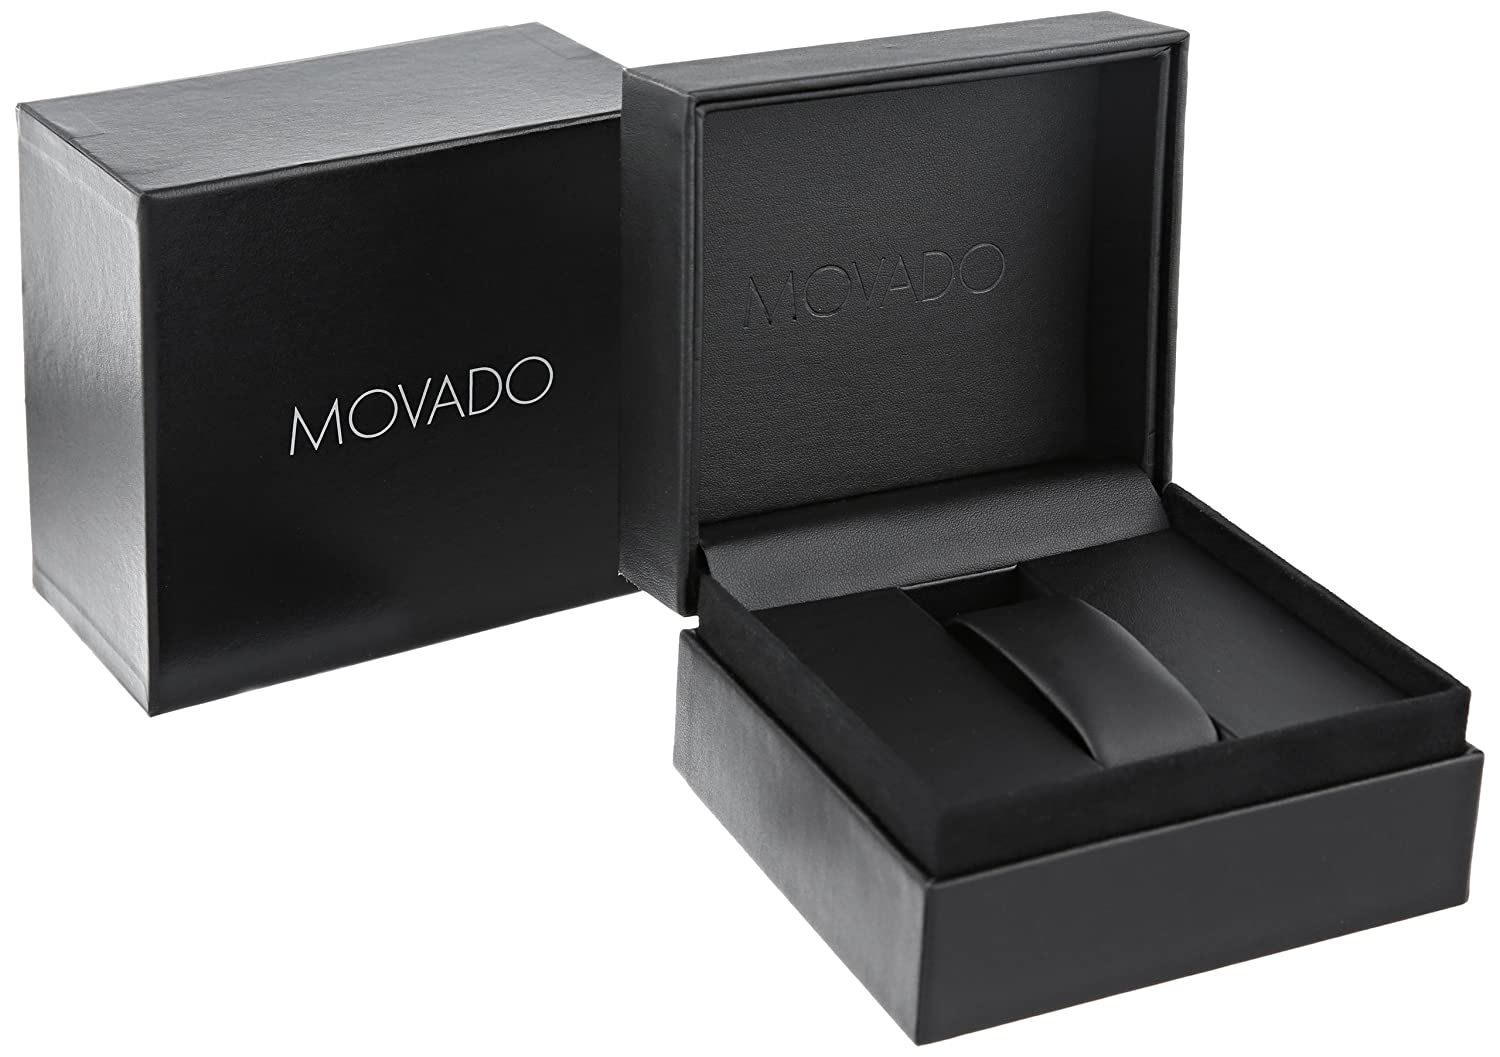 amazon com movado men s 2600096 series 800 stainless steel amazon com movado men s 2600096 series 800 stainless steel watch black leather band watches